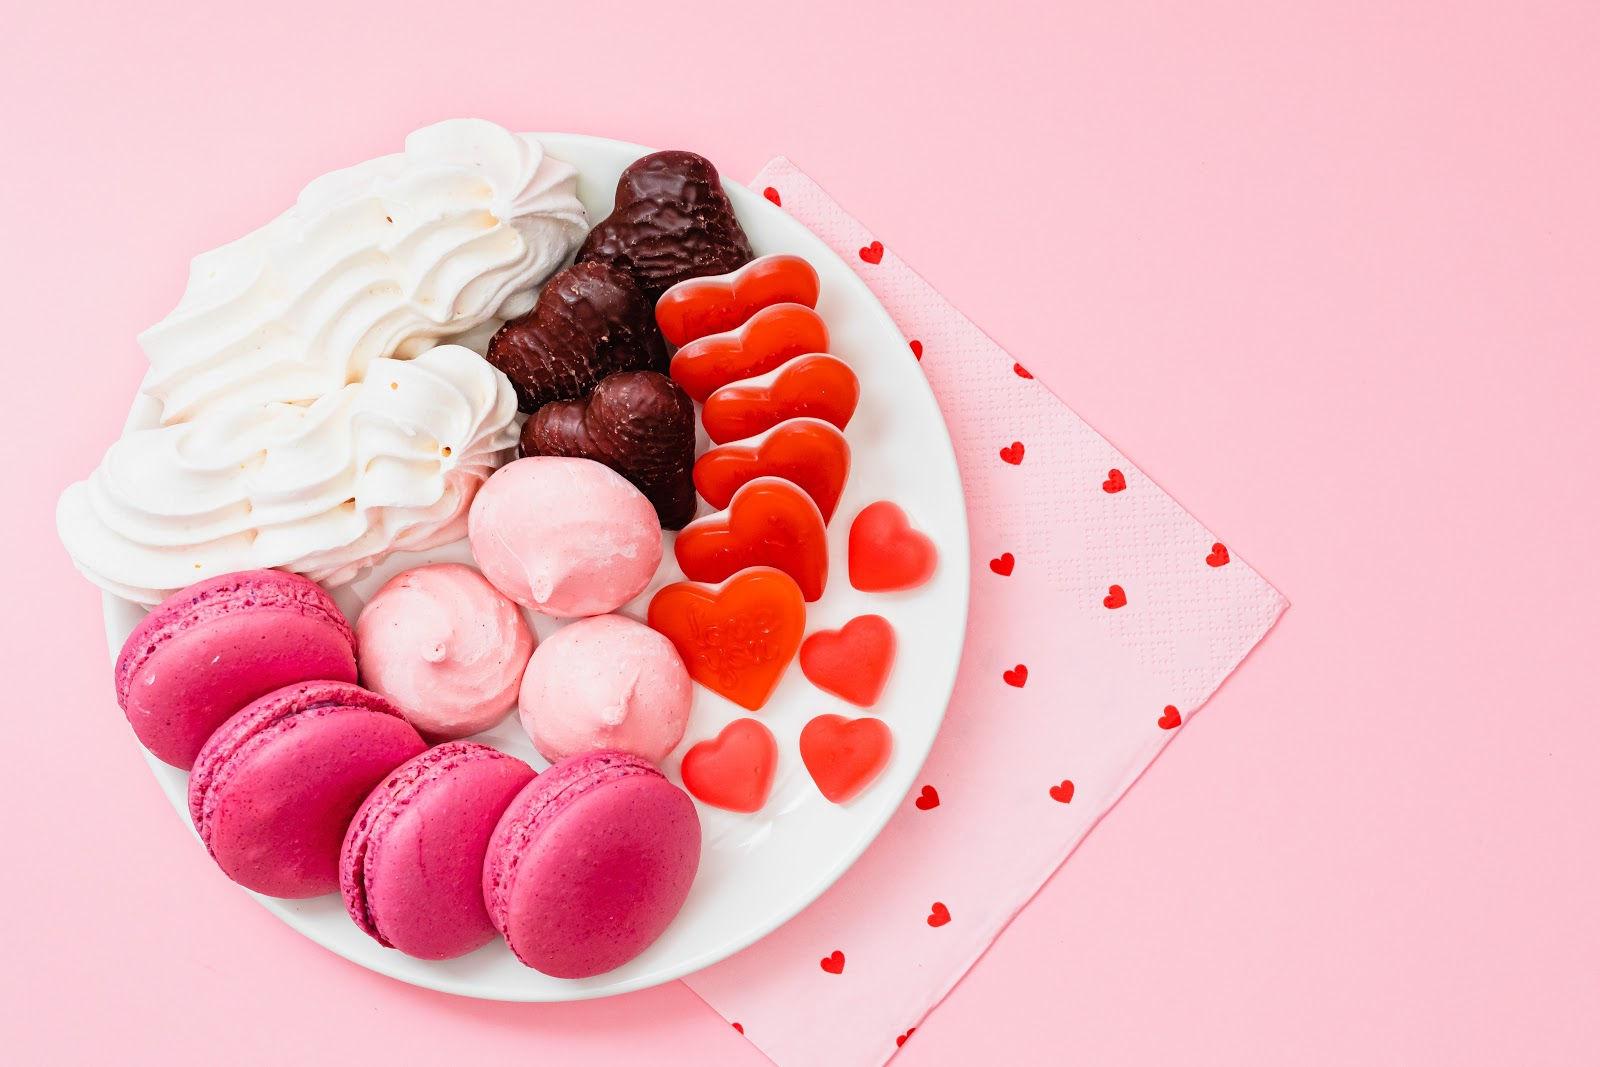 Valentines day desserts with pink macaroons and hearts